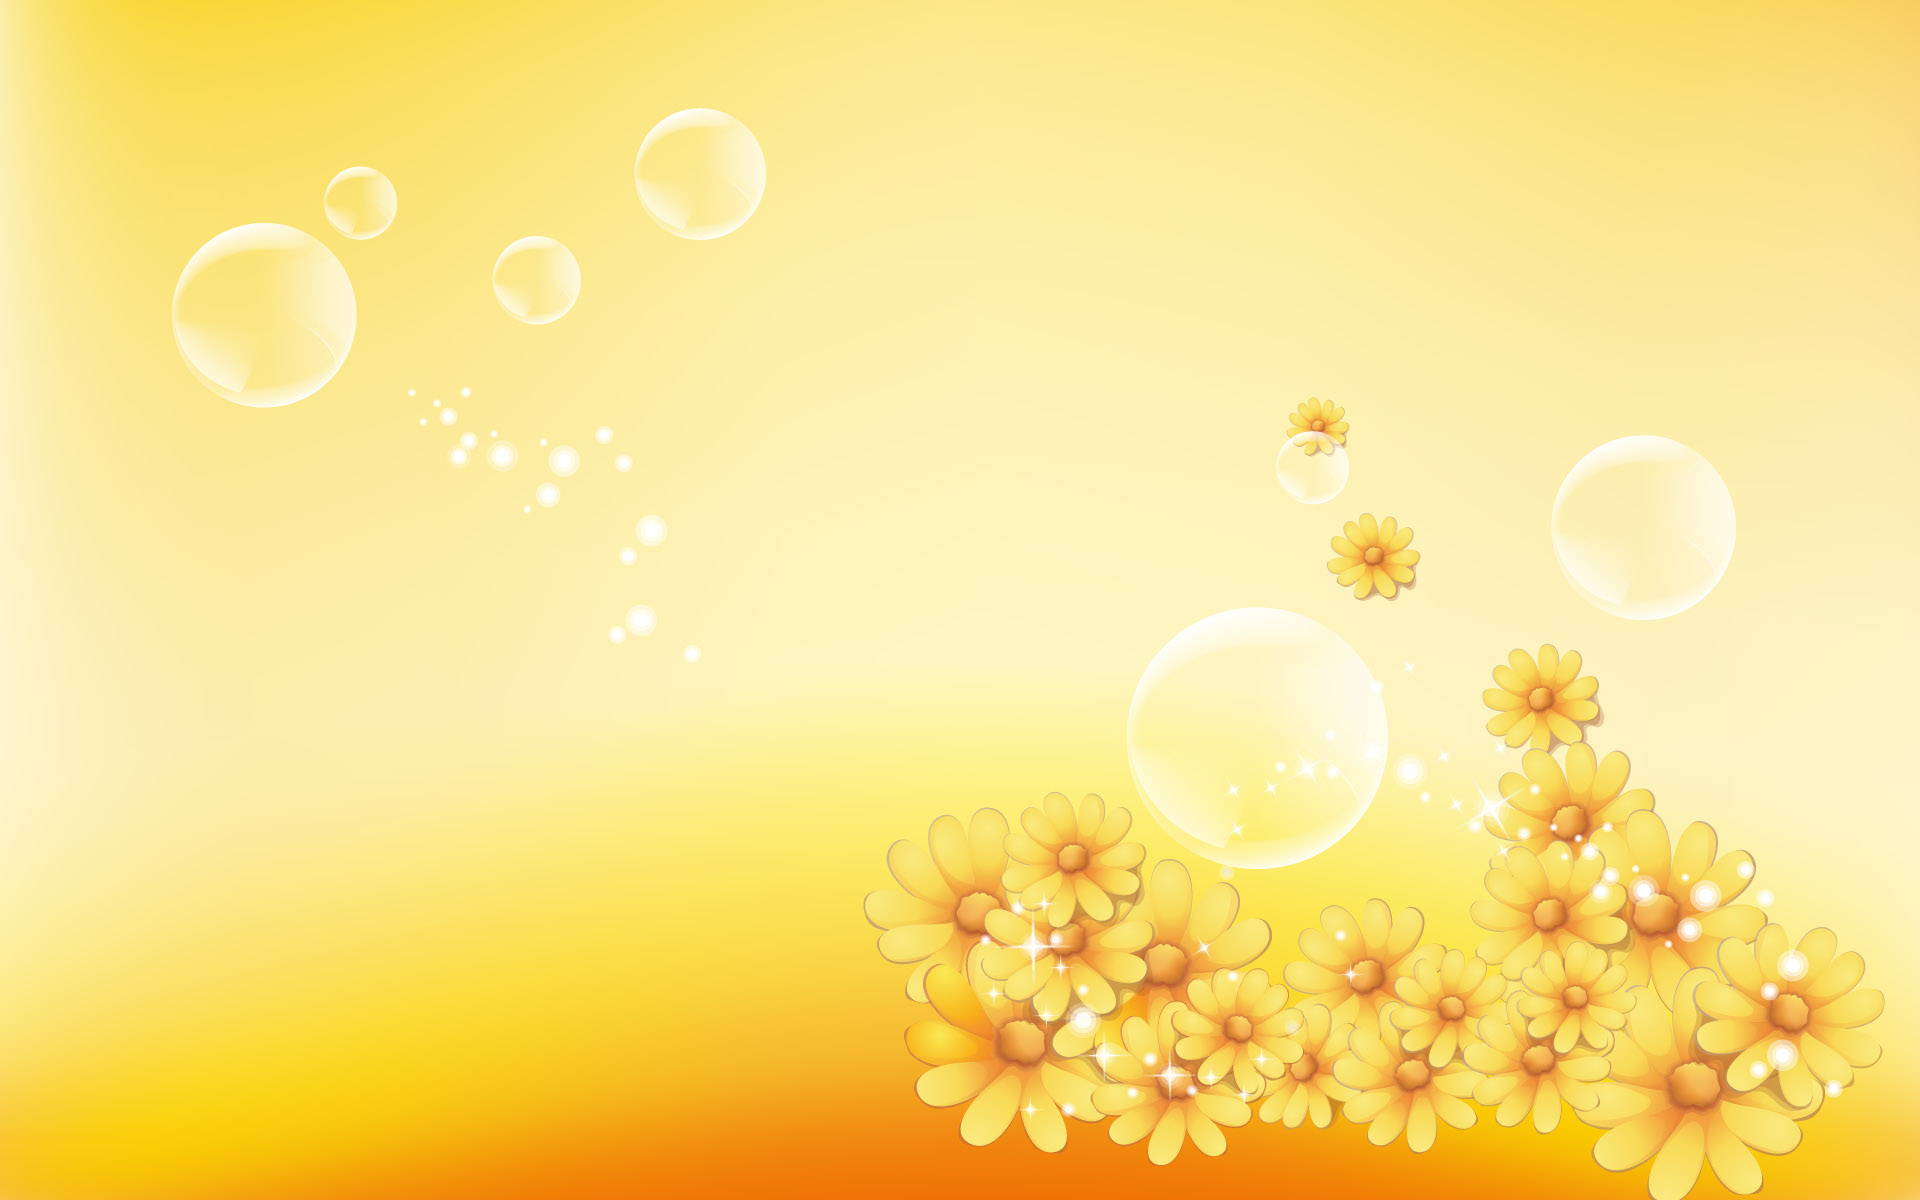 Yellow Flowers Background Hd Wallpaper